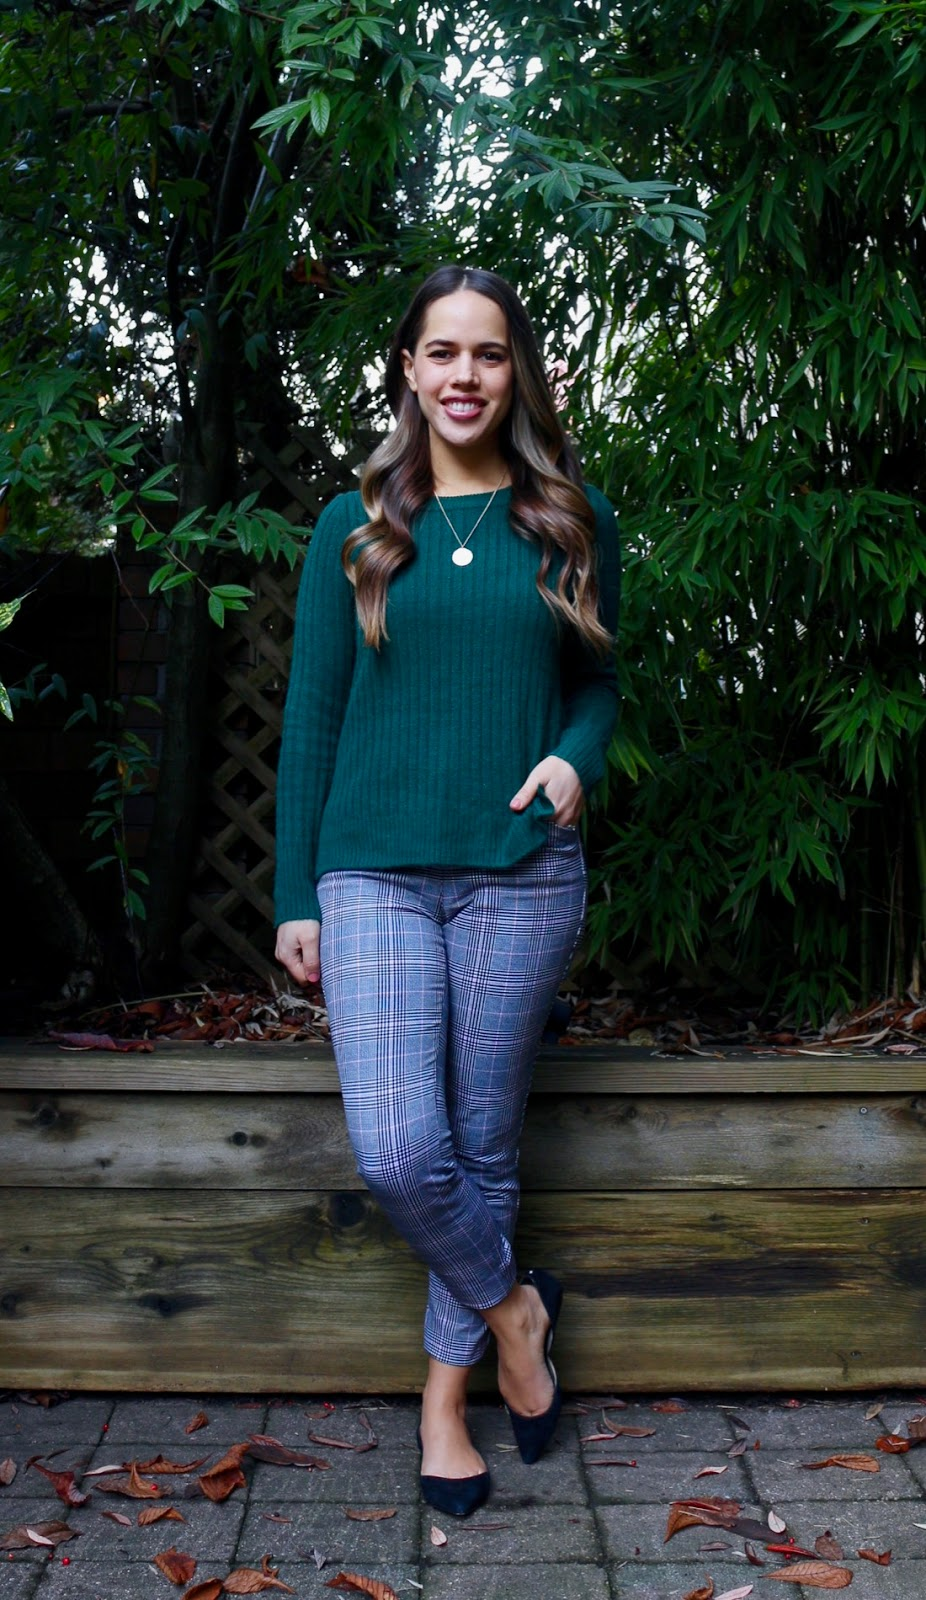 Jules in Flats - Old Navy Plaid Pants + Cozy Sweater (Business Casual Winter Workwear on a Budget)